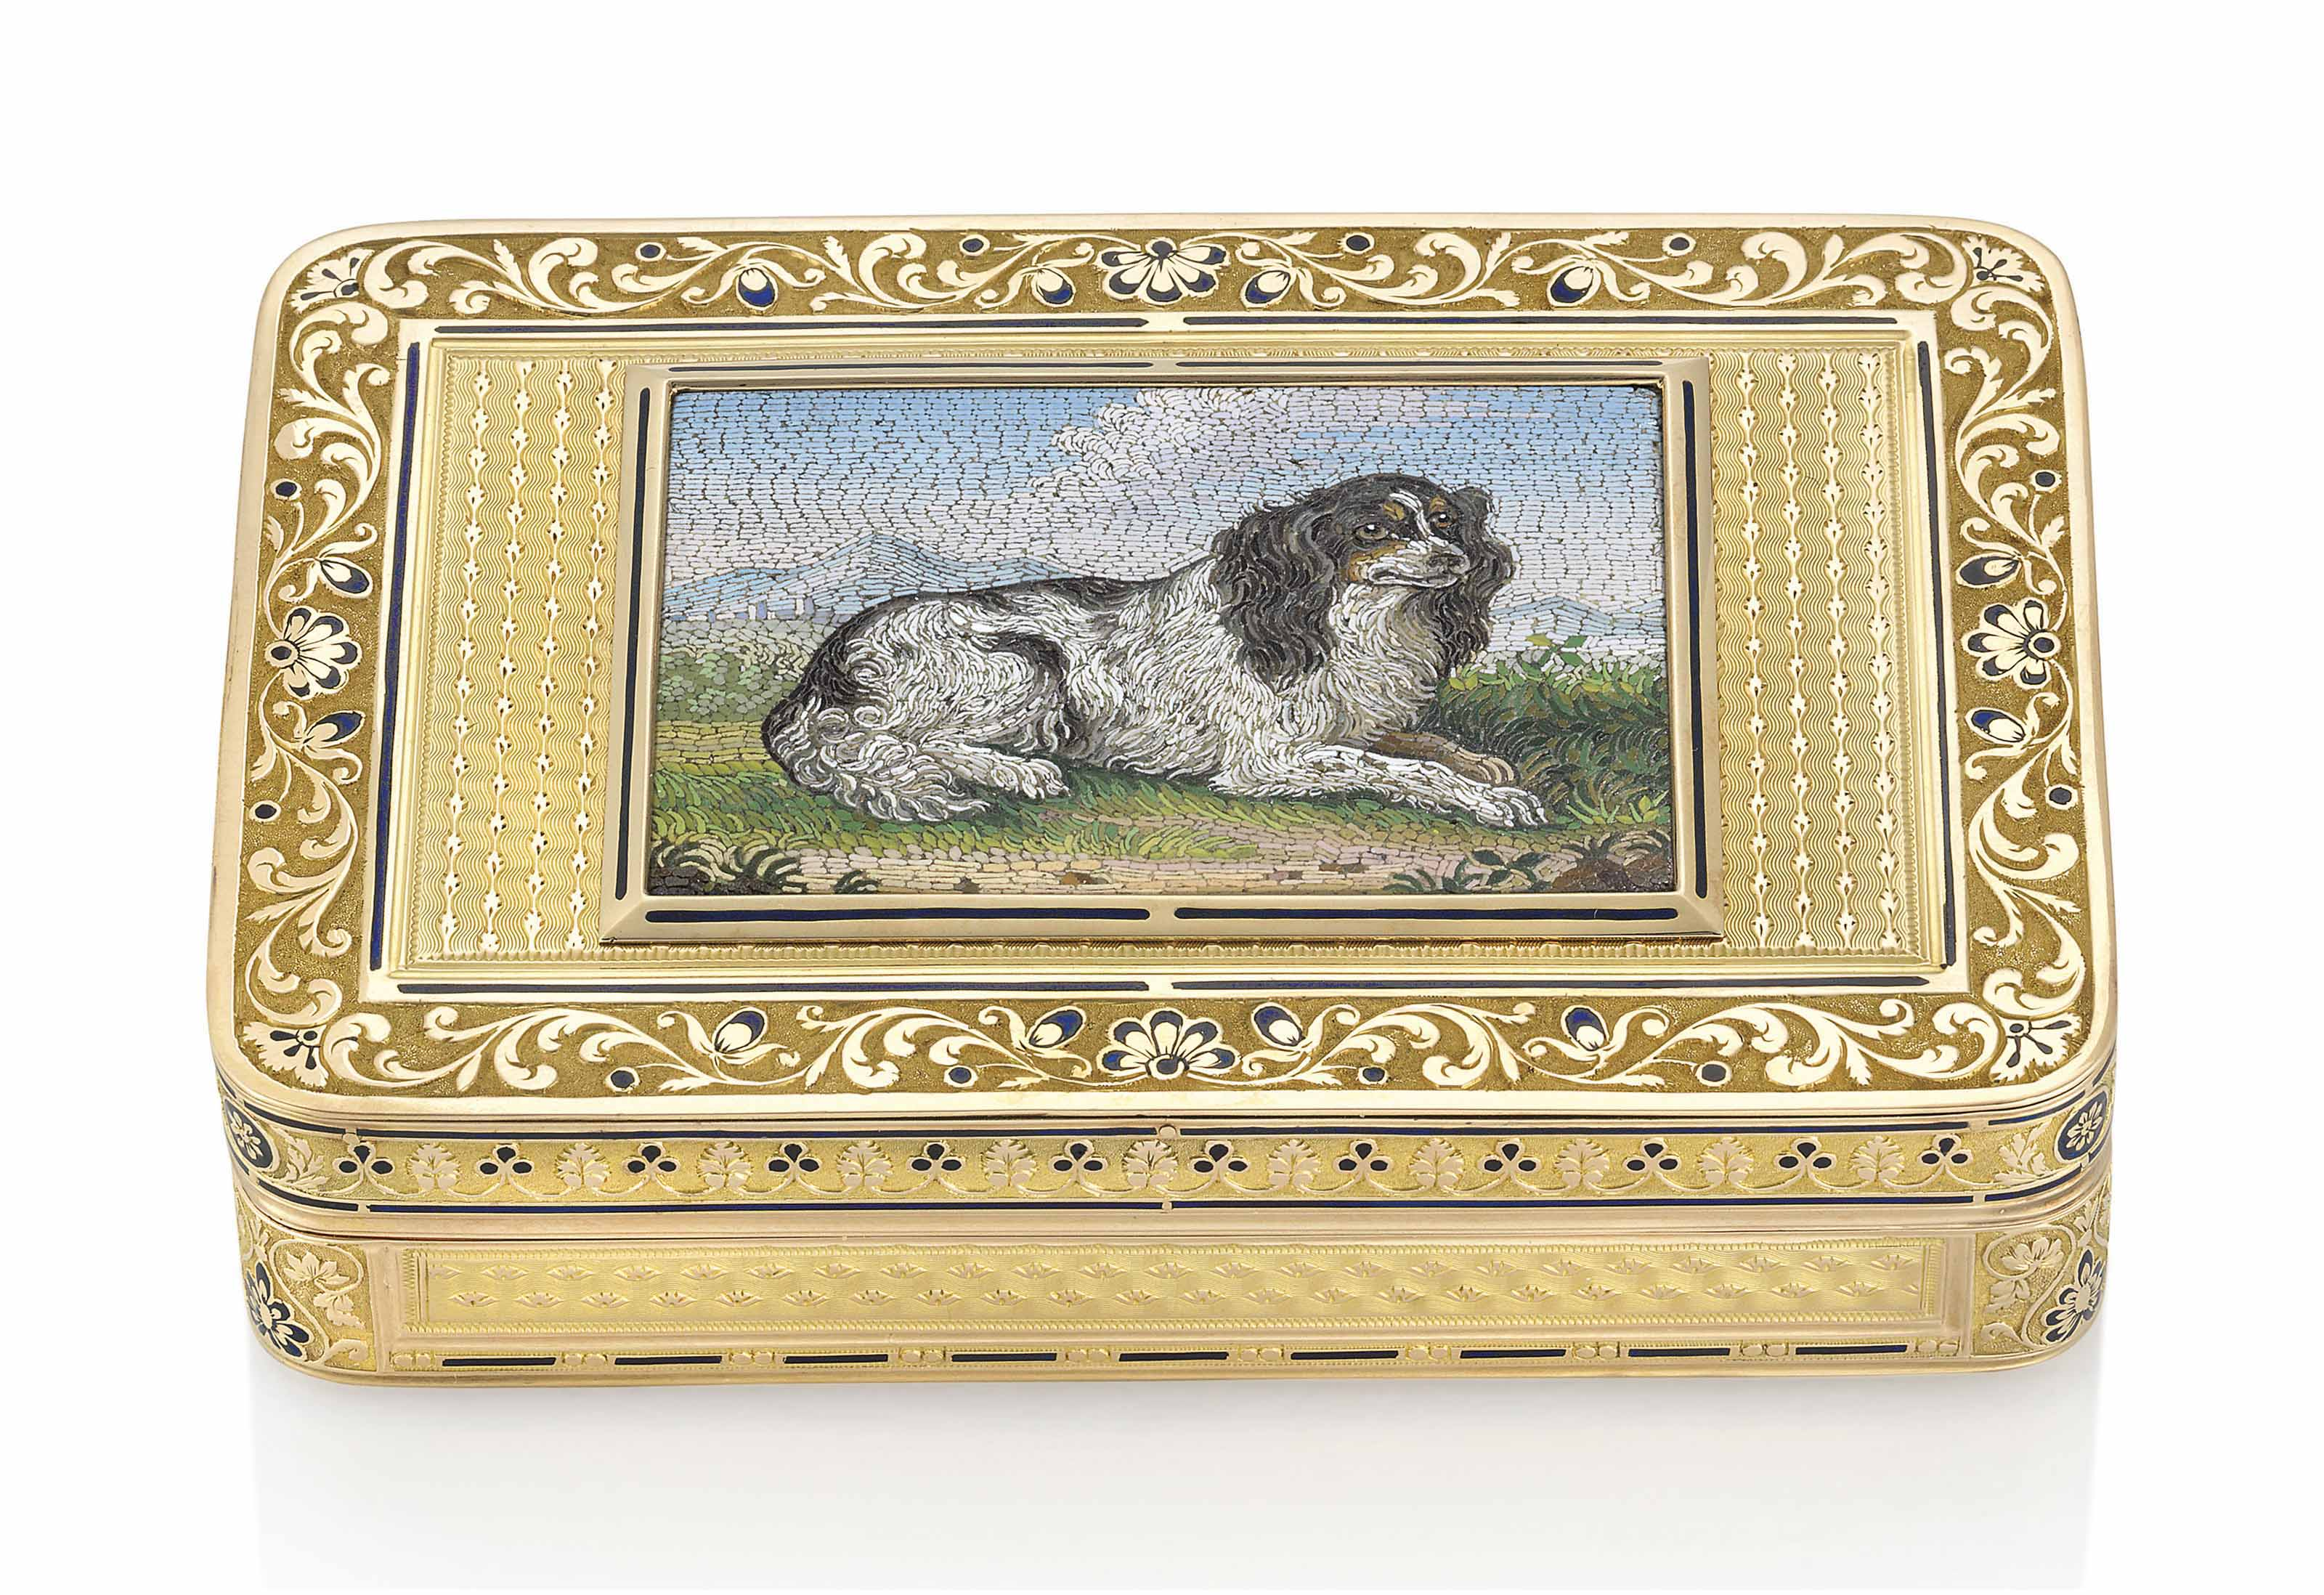 A SWISS ENAMELLED GOLD SNUFF-BOX SET WITH A MICROMOSAIC PLAQUE